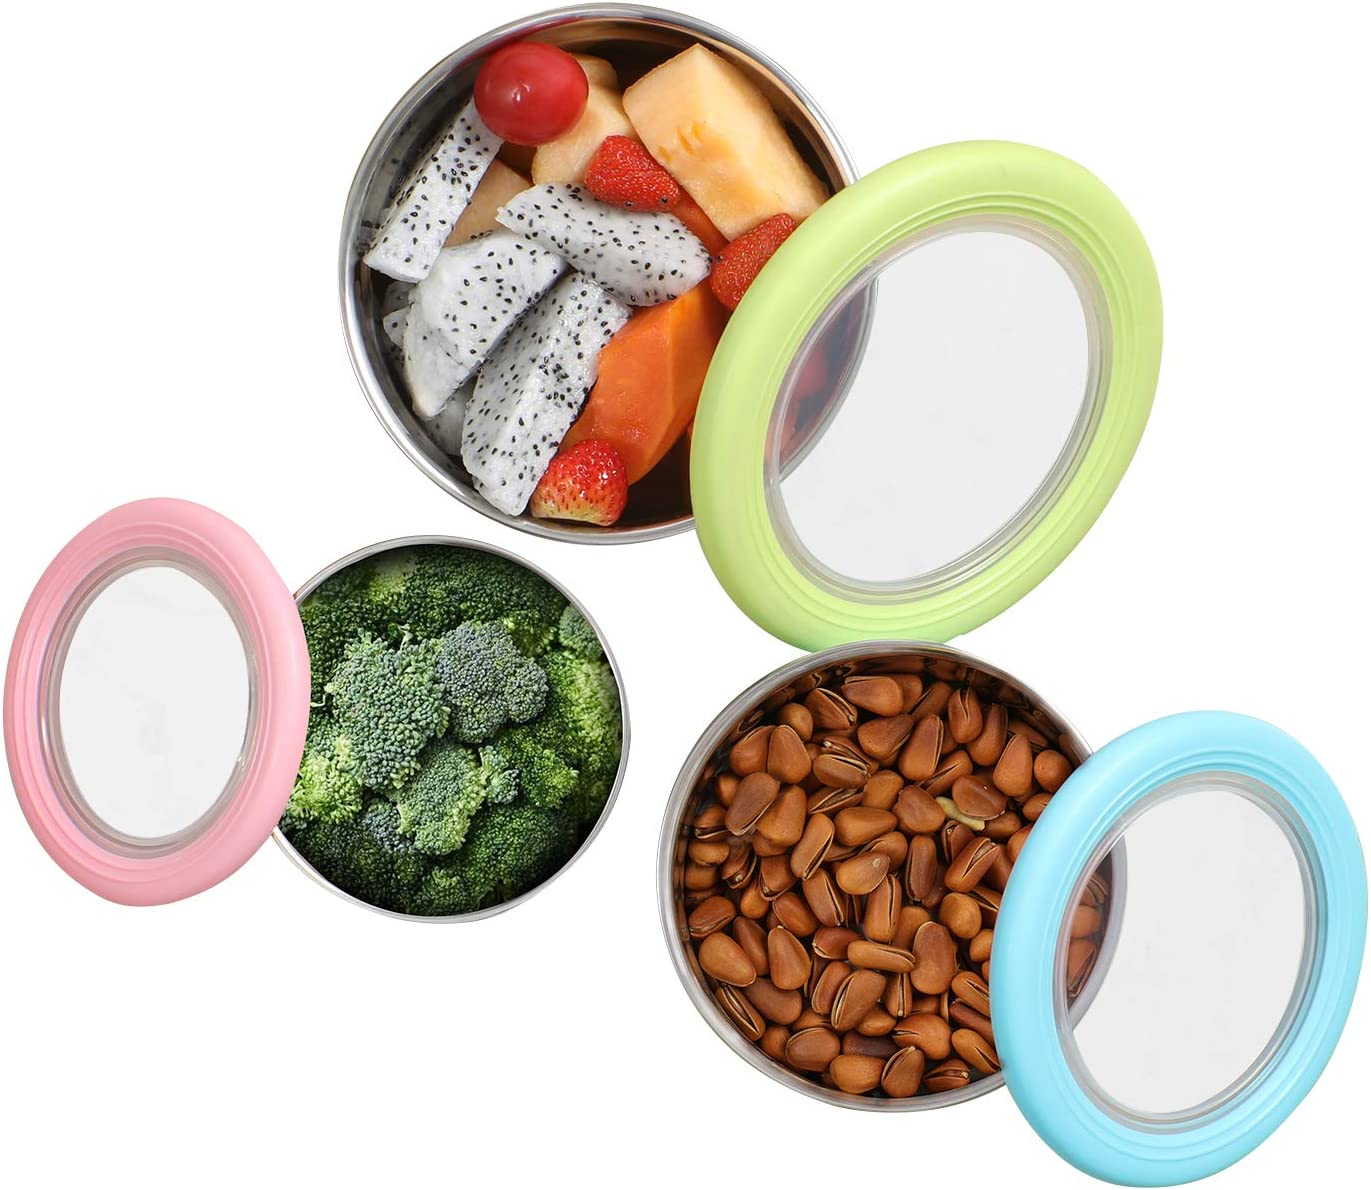 Round Stainless Steel Sealed Anti-Scald Bowl,Food Storage Box,Fresh-keeping Box,Leak-proof Sealed Box,Cute Children Rice Bowl with Silicone Leak-Proof Lid,Non-Slip Lunch Box for Student & Adult